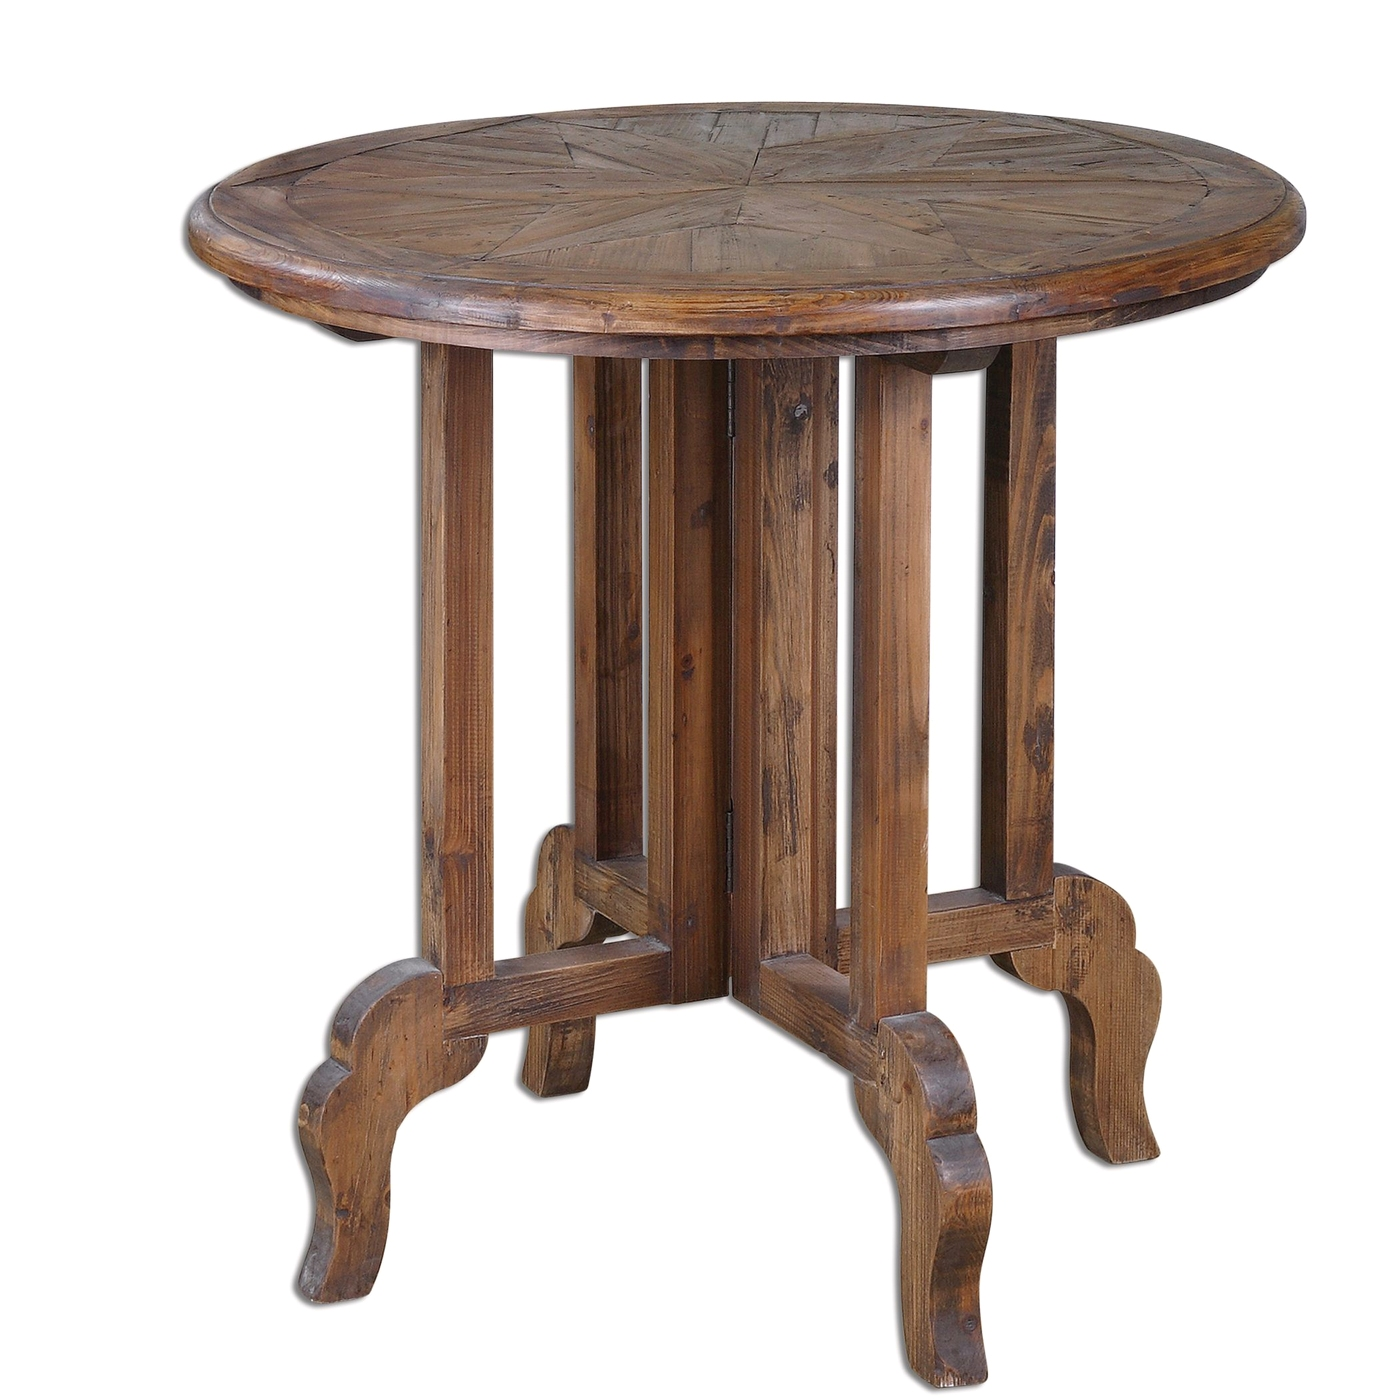 imber distressed reclaimed wood accent table oval round with drawer mission style end tables outdoor chair homesense dining chairs meyda tiffany shades small coffee lighting solid